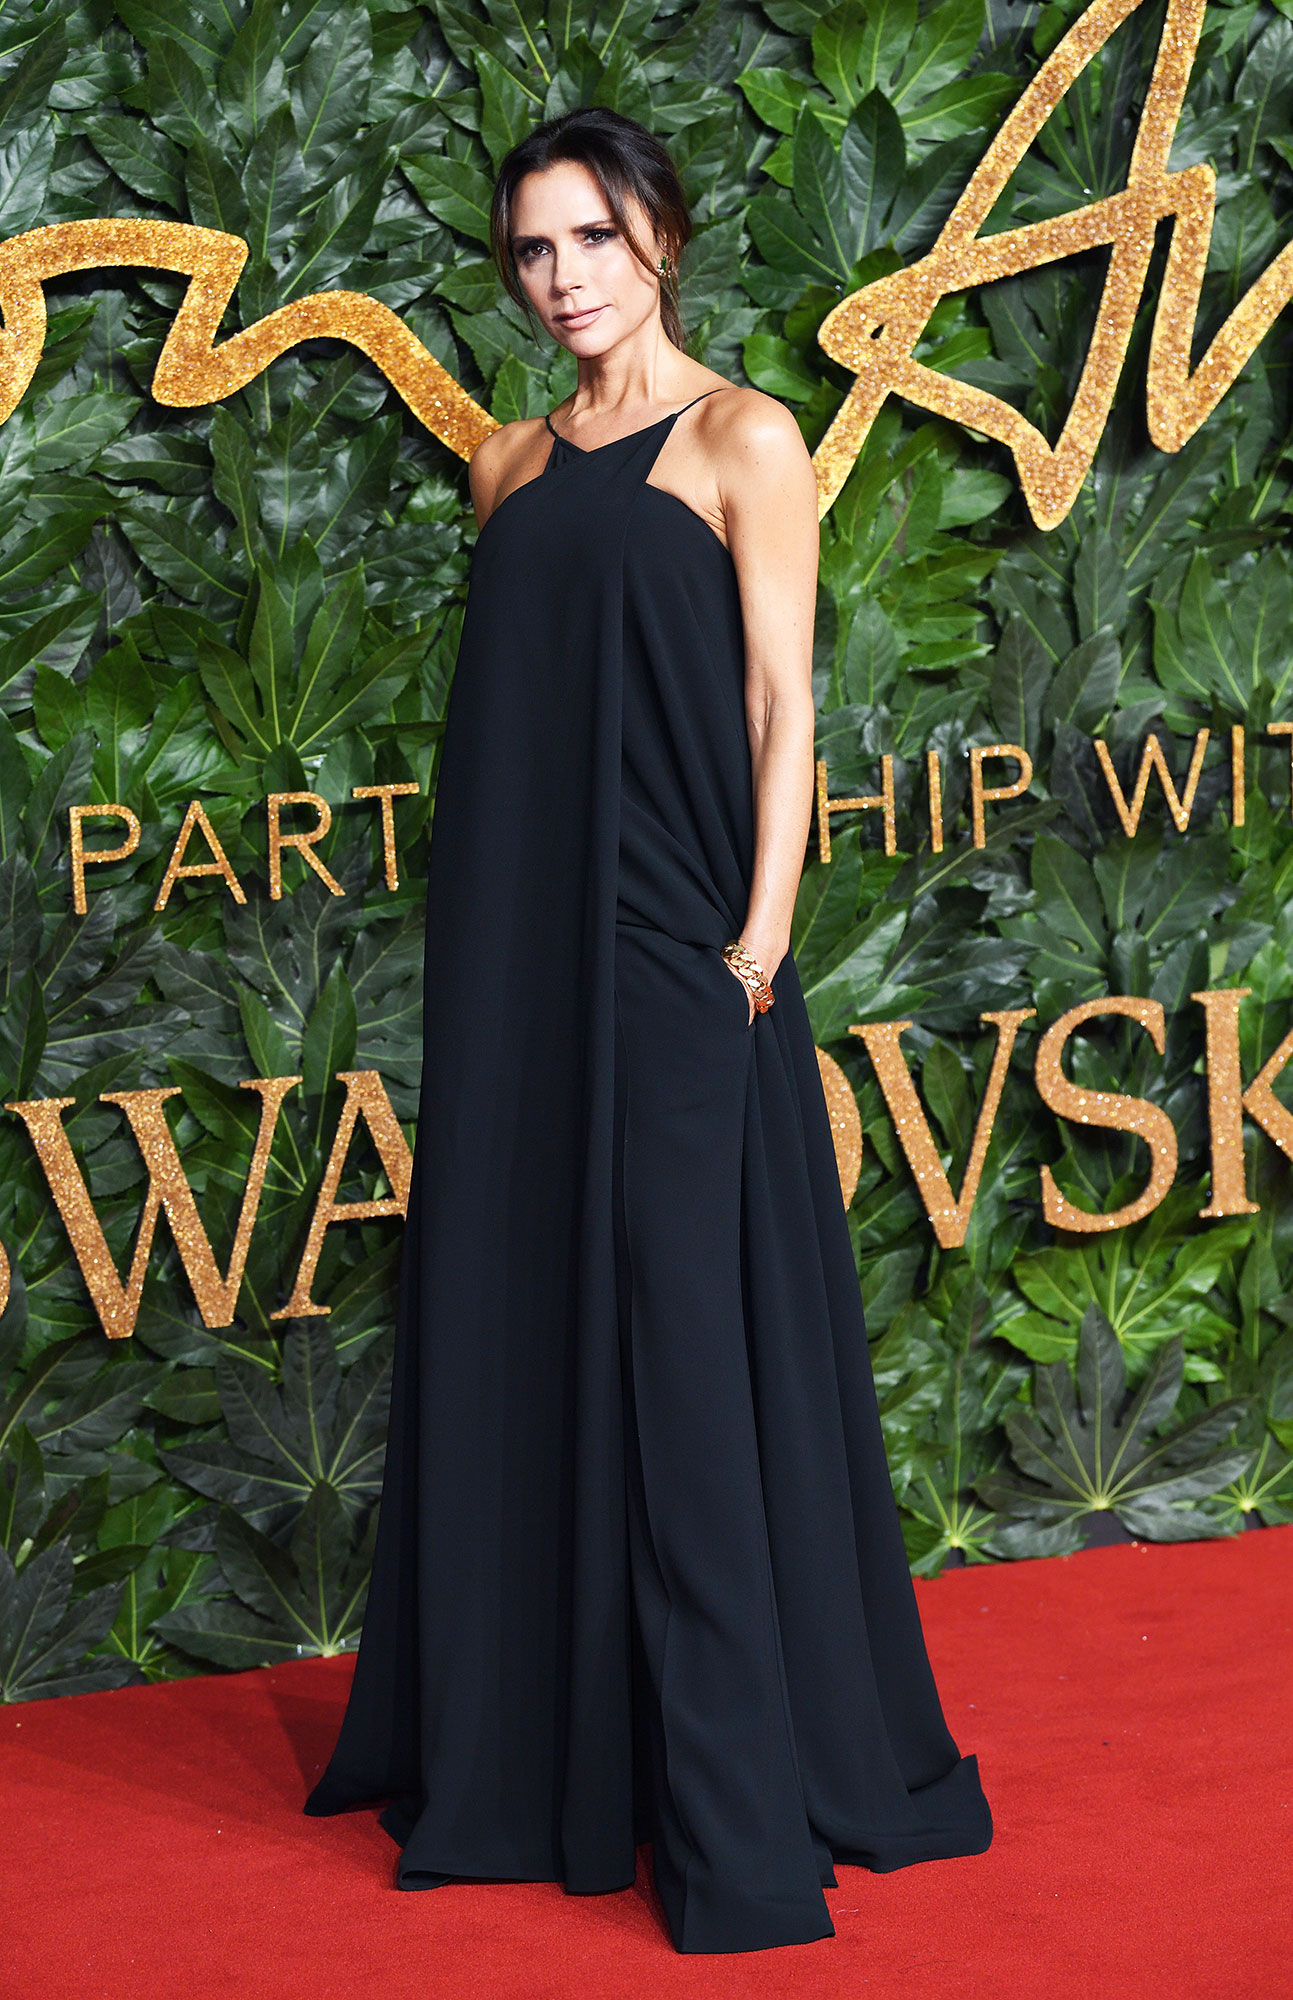 Victoria Beckham The Fashion Awards 2018 - Proving black is anything but boring, the designer attended the 2018 British Fashion Awards in a one-piece noir number that was actually a jumpsuit despite giving the illusion of being a gown.